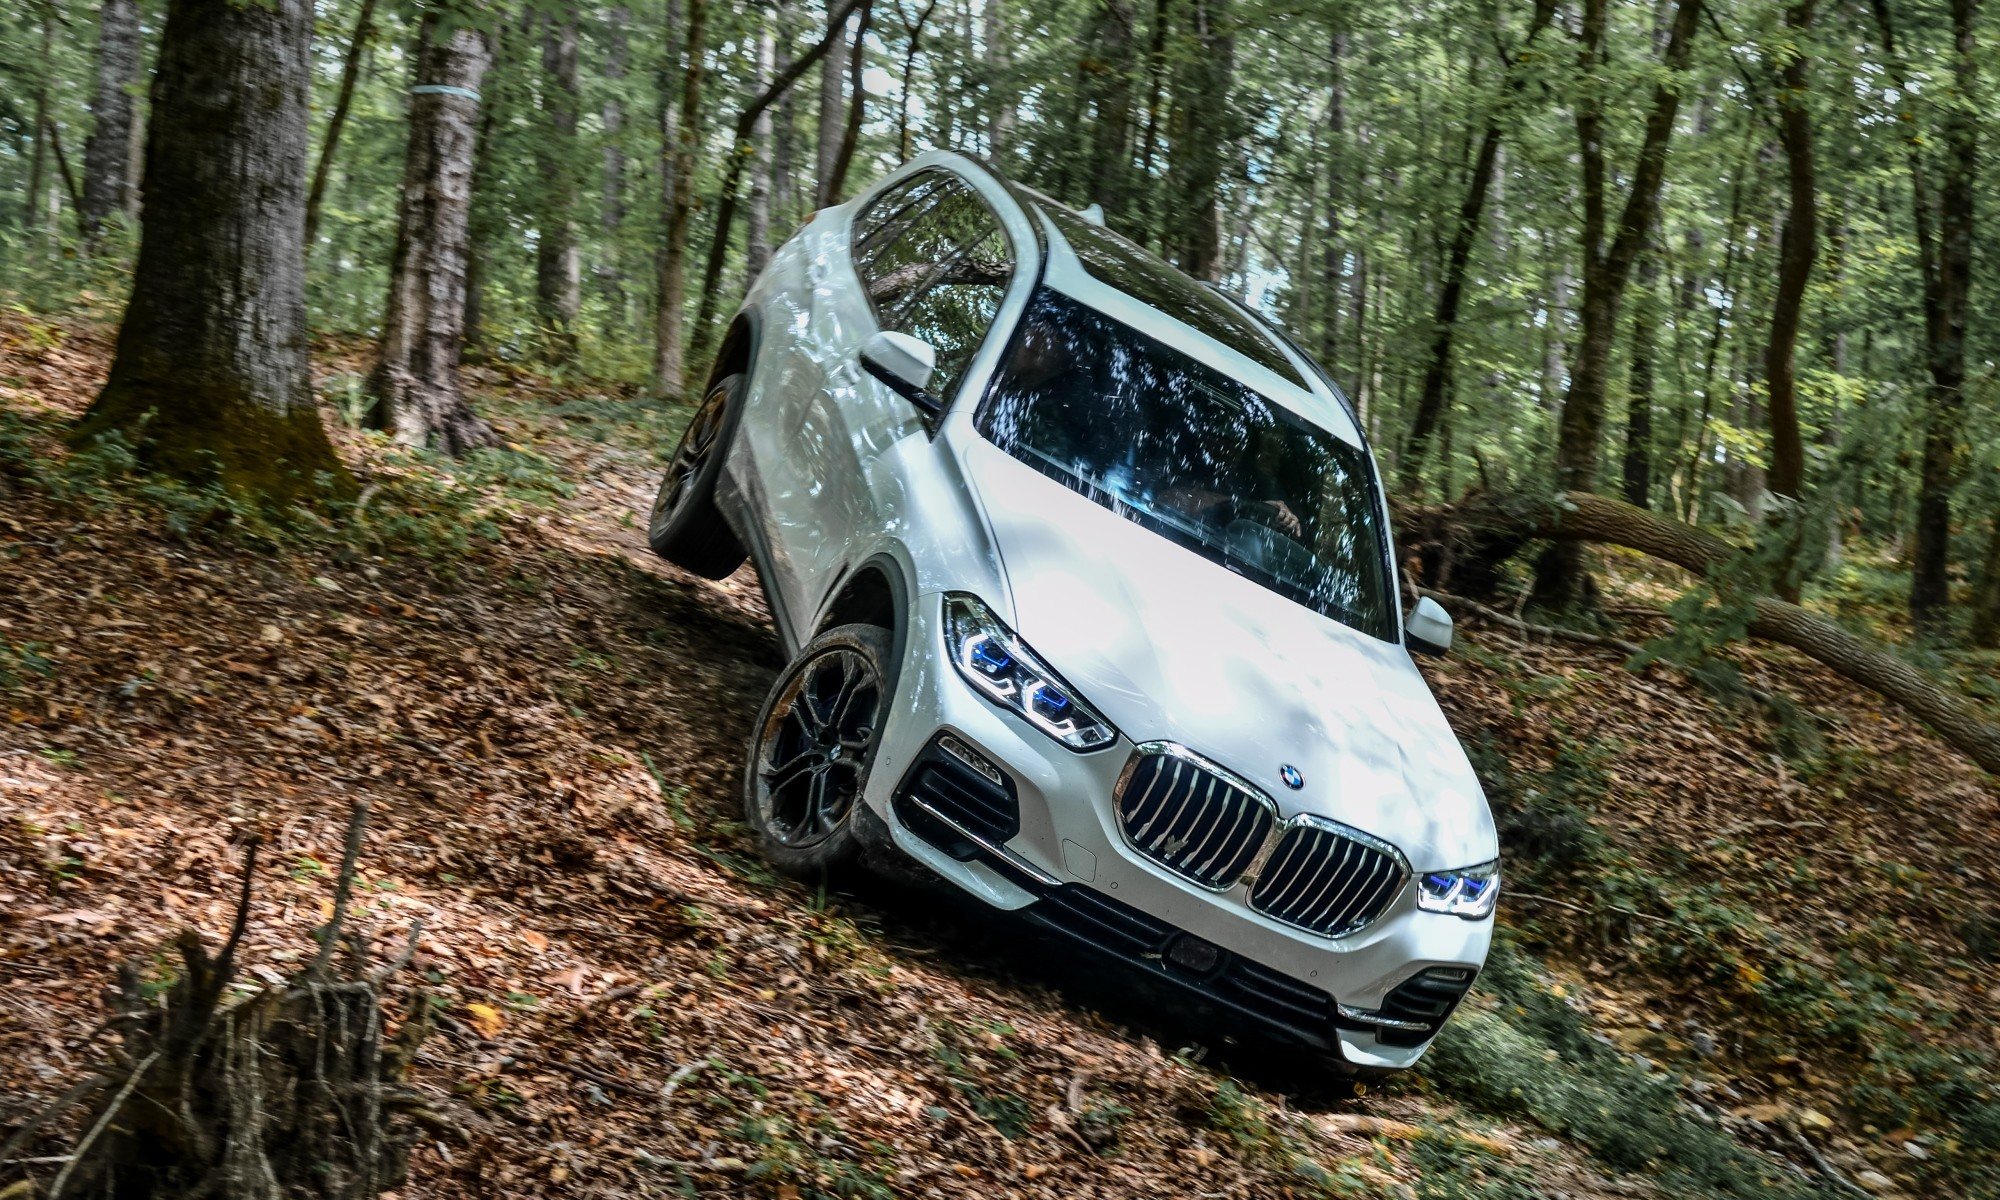 New BMW X5 off-road